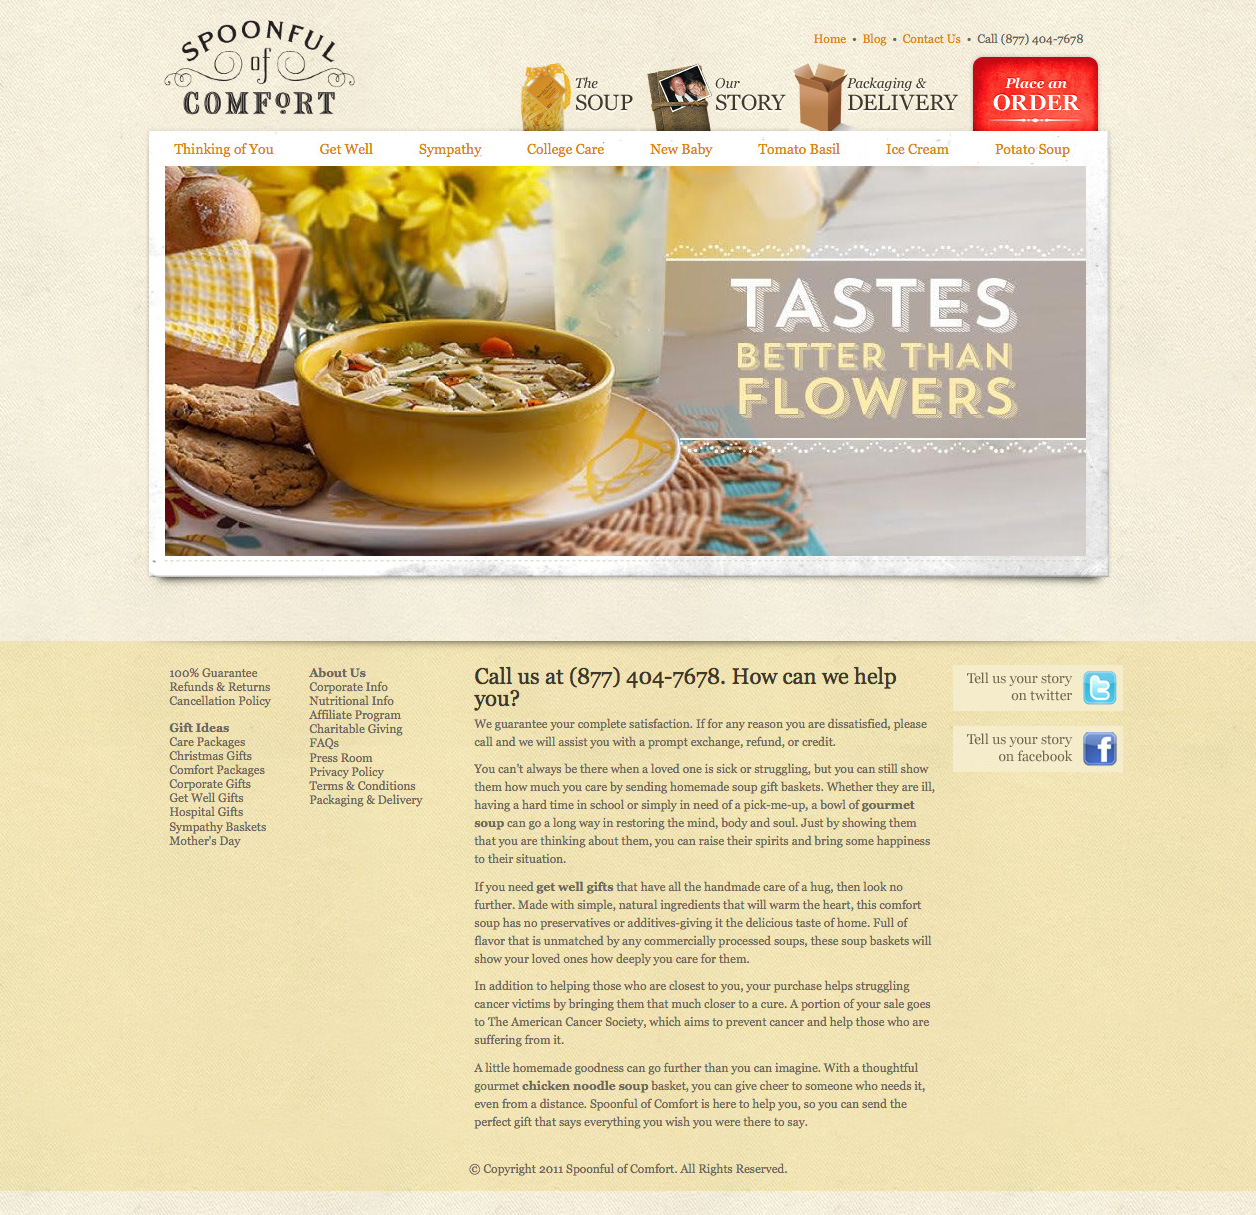 Spoonful of Comfort website design before